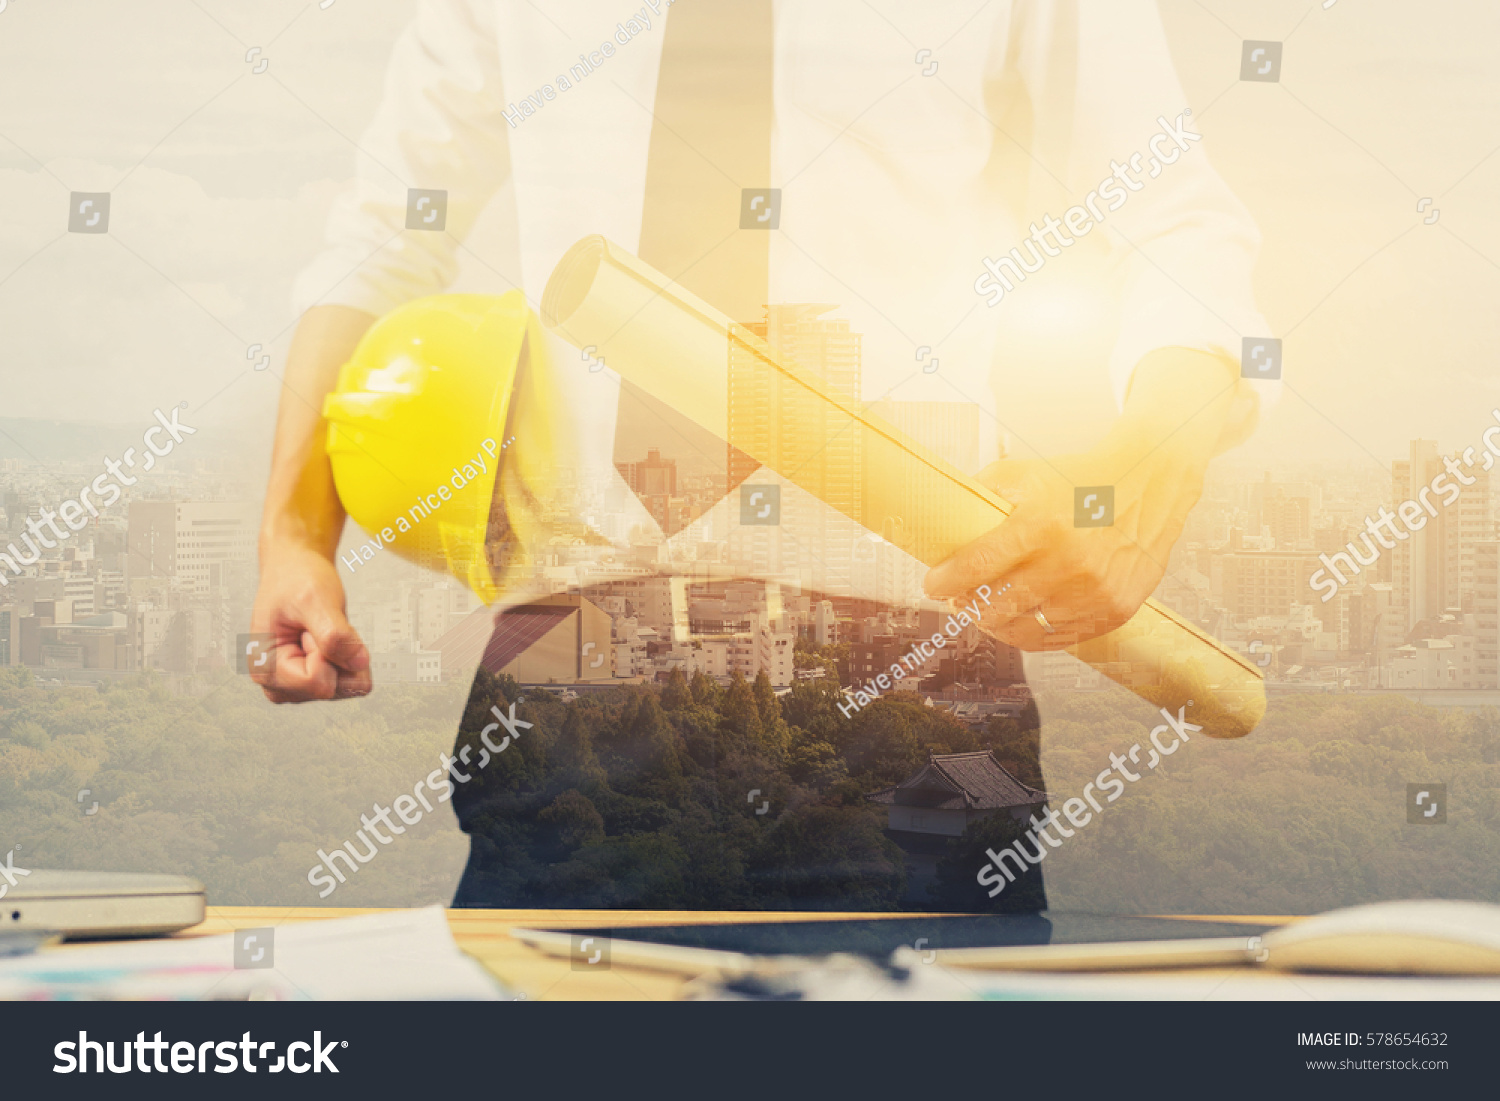 Engineer hold security helmet blueprint paper stock photo engineer hold security helmet and blueprint paper construction drawing plan near laptop computerarchitect working malvernweather Choice Image